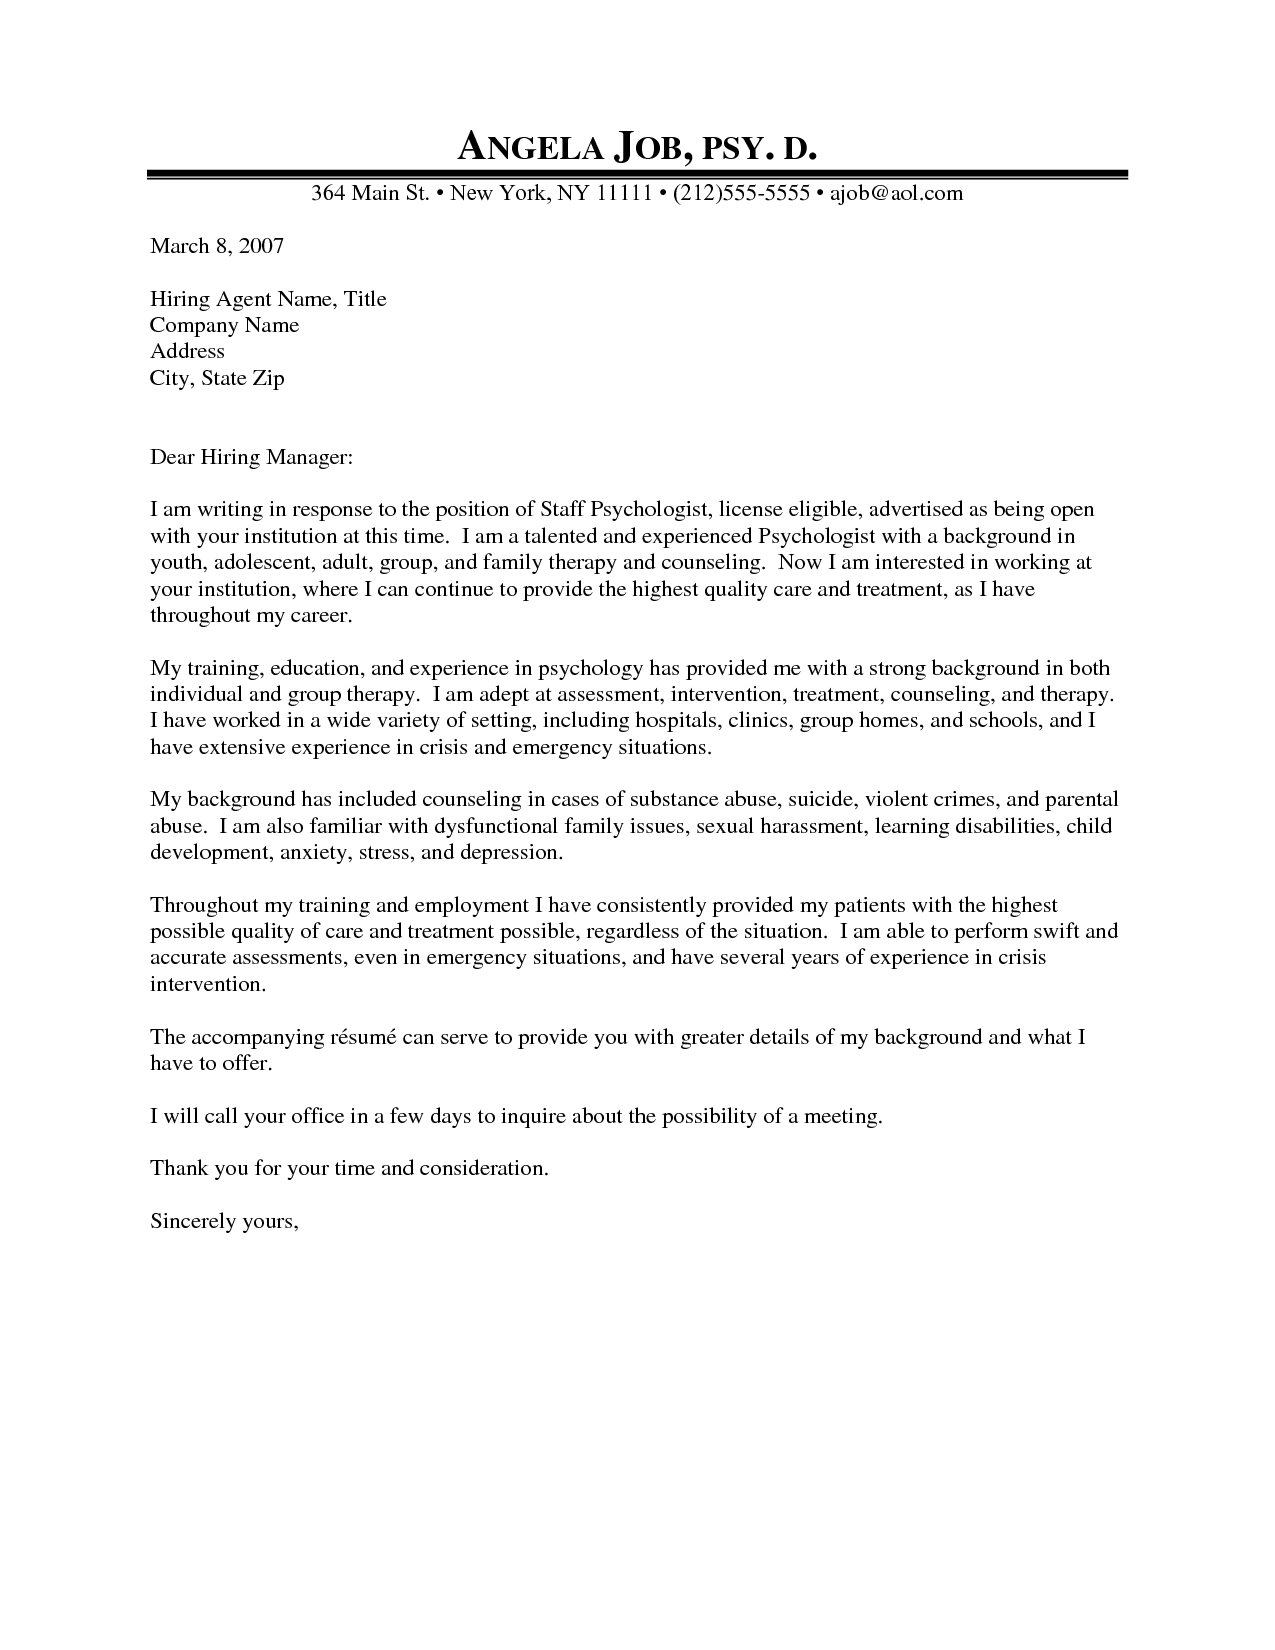 psychology cover letters - Sample Cover Letter For Counselor